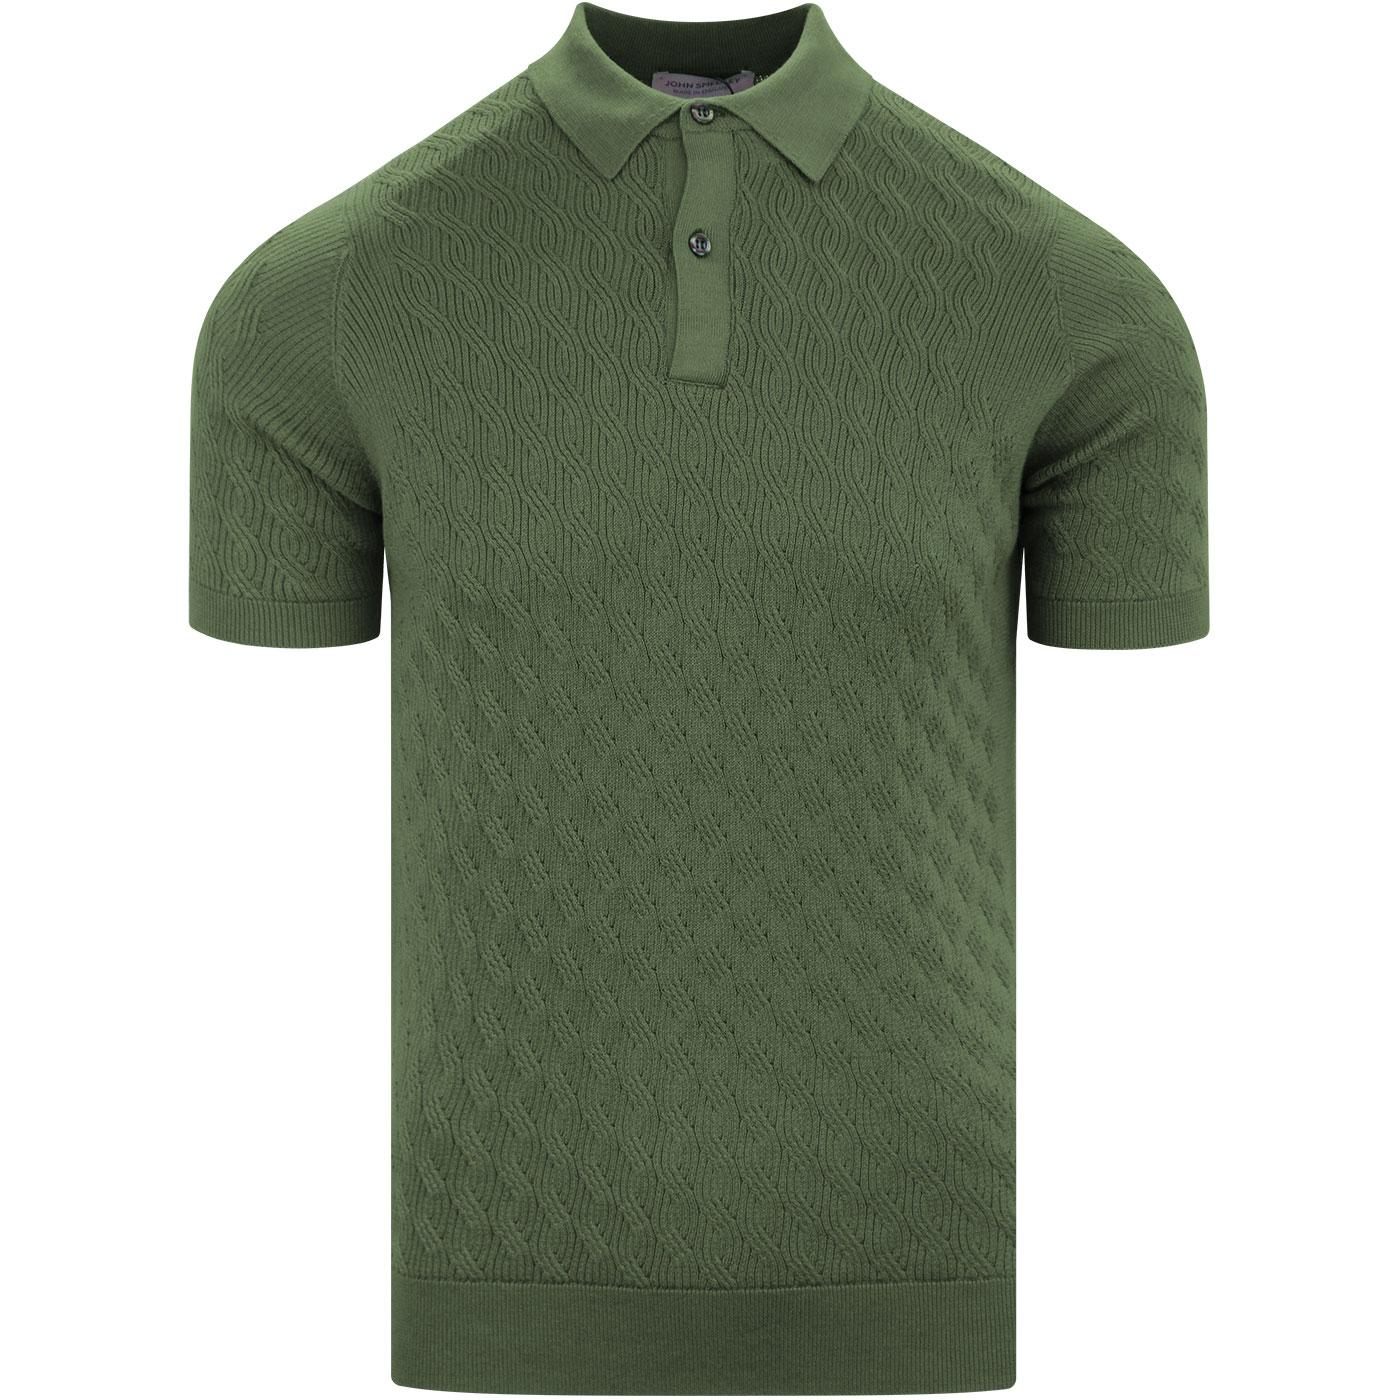 Popplewell JOHN SMEDLEY Cable Knit Polo Shirt (SG)